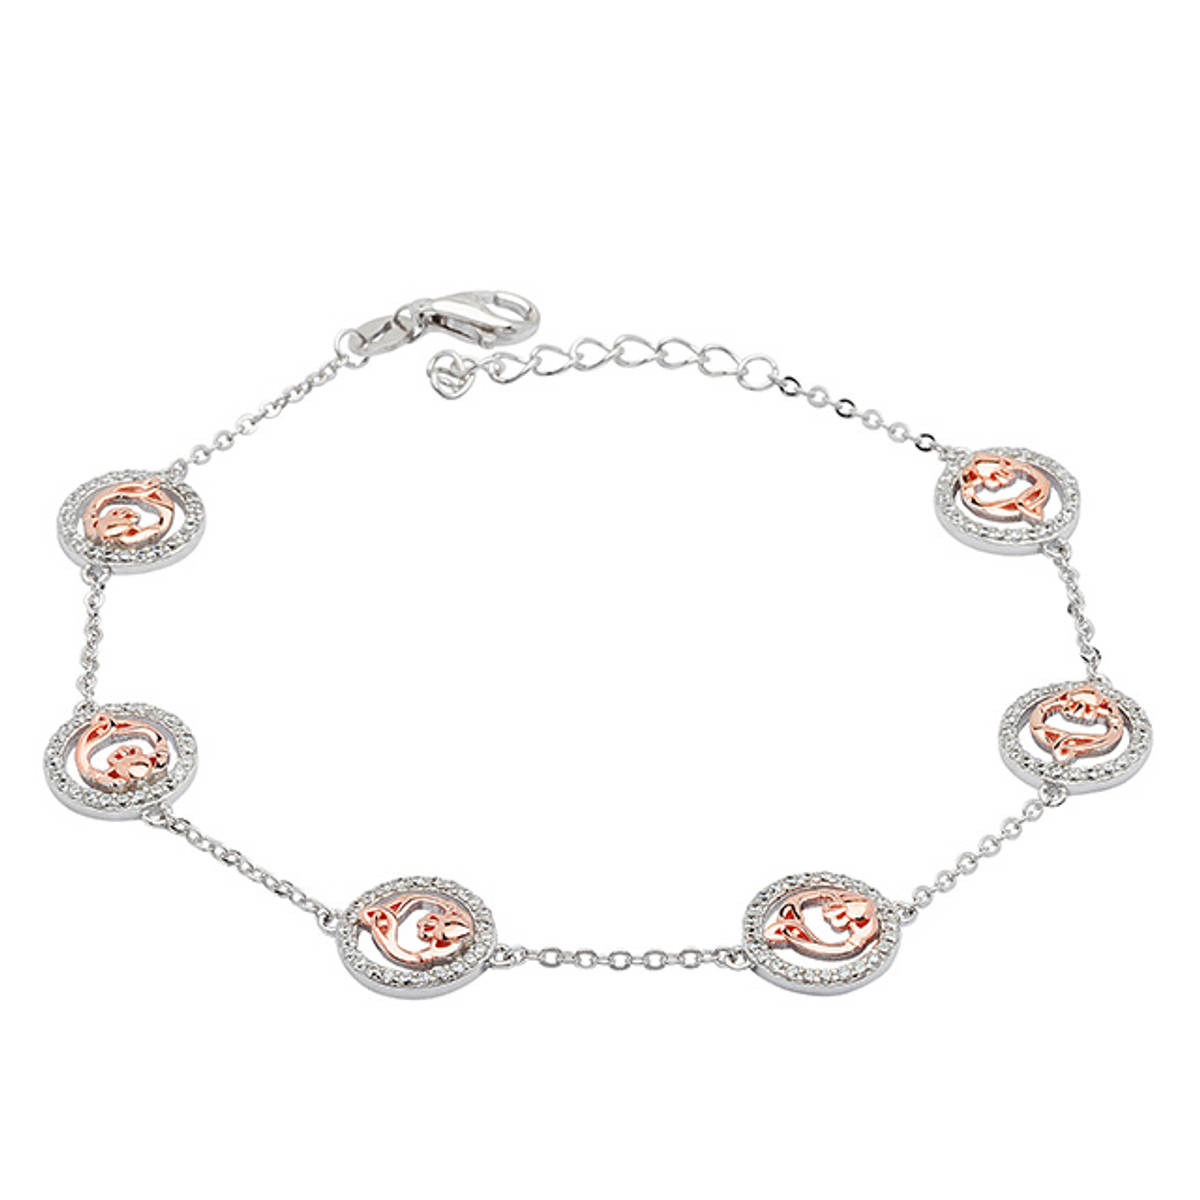 Sterling Silver Link and Chain Bracelet with Six Rose Gold Claddagh Links in Cubic Zirconia Surround.